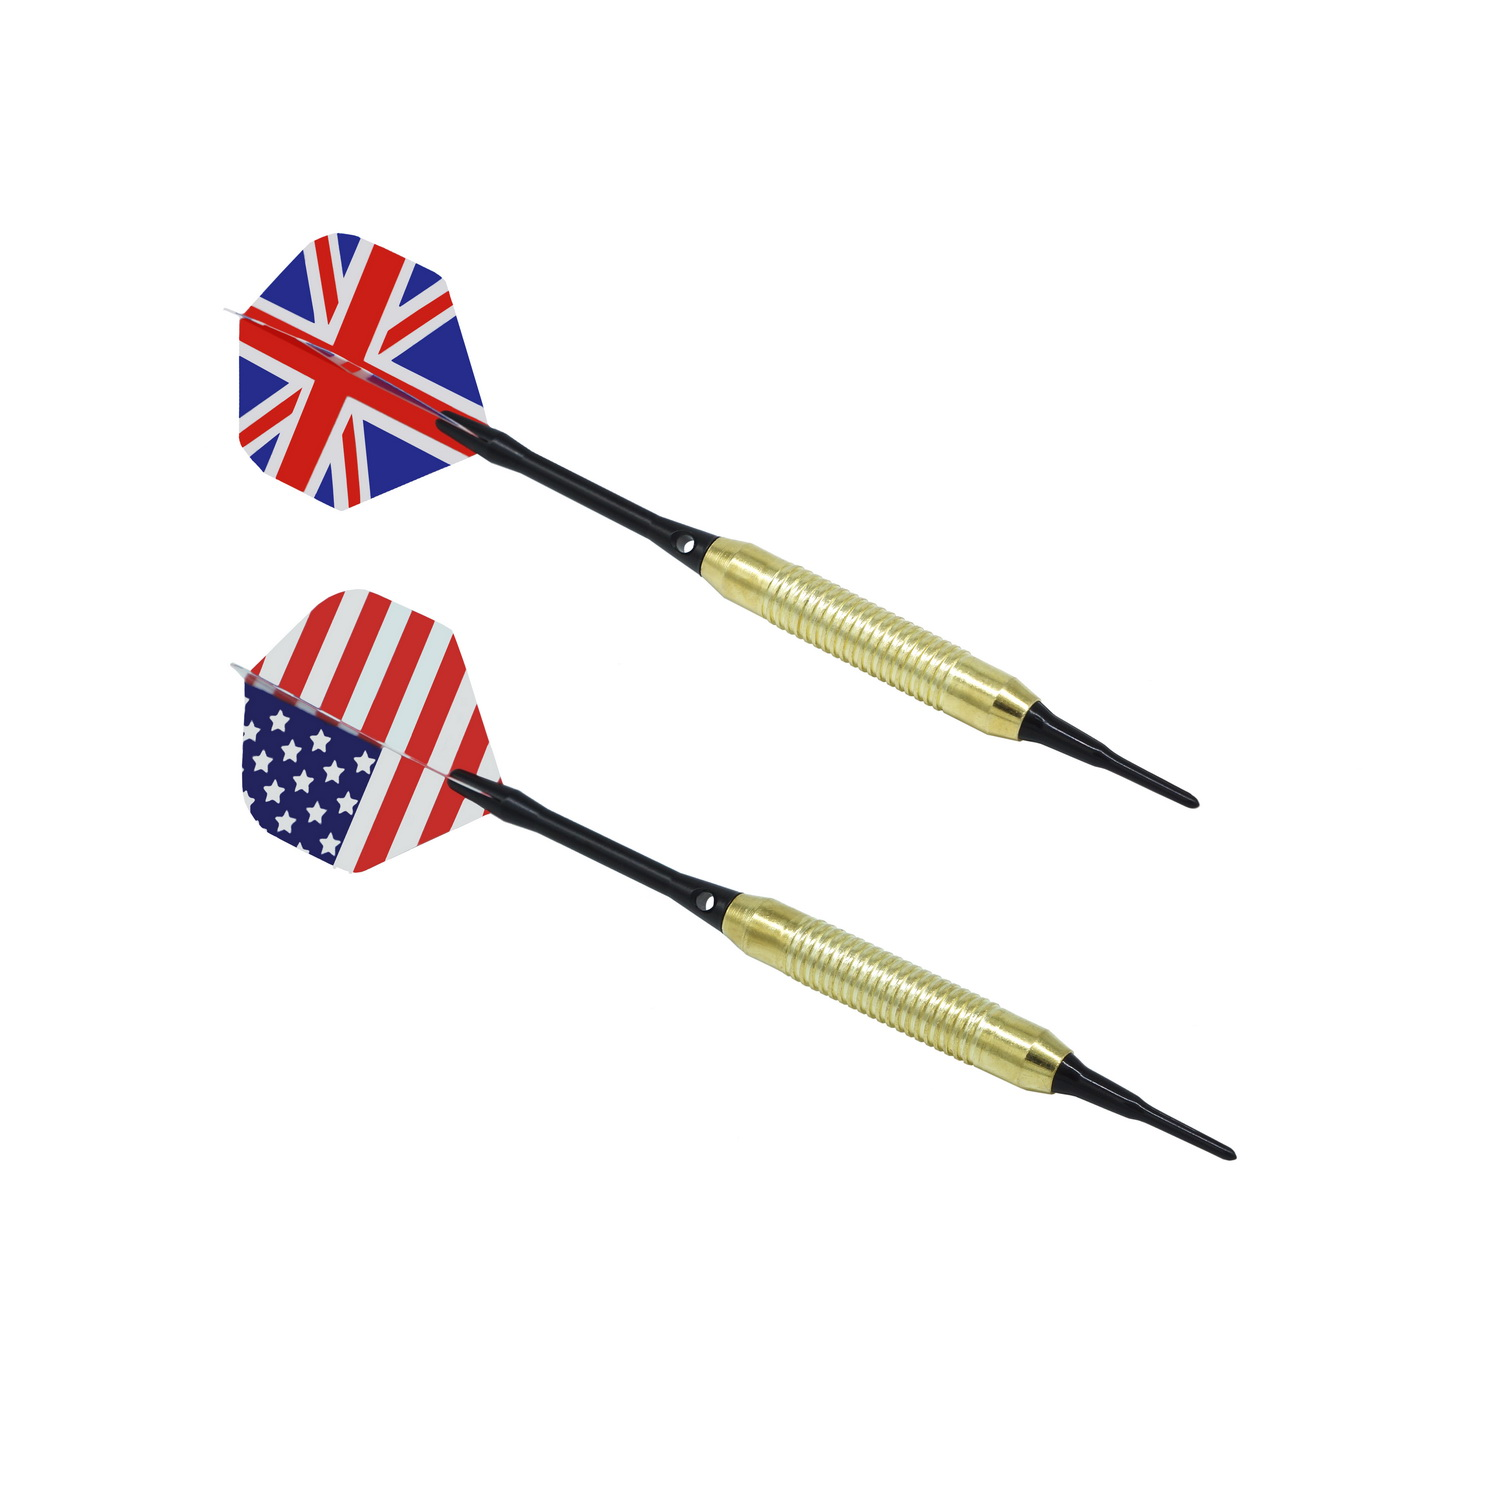 Inflatable Sports Dart, Nylon Dart Shafts/ Stems For Steel-tip/ Soft-tip, 36mm, 42mm,48